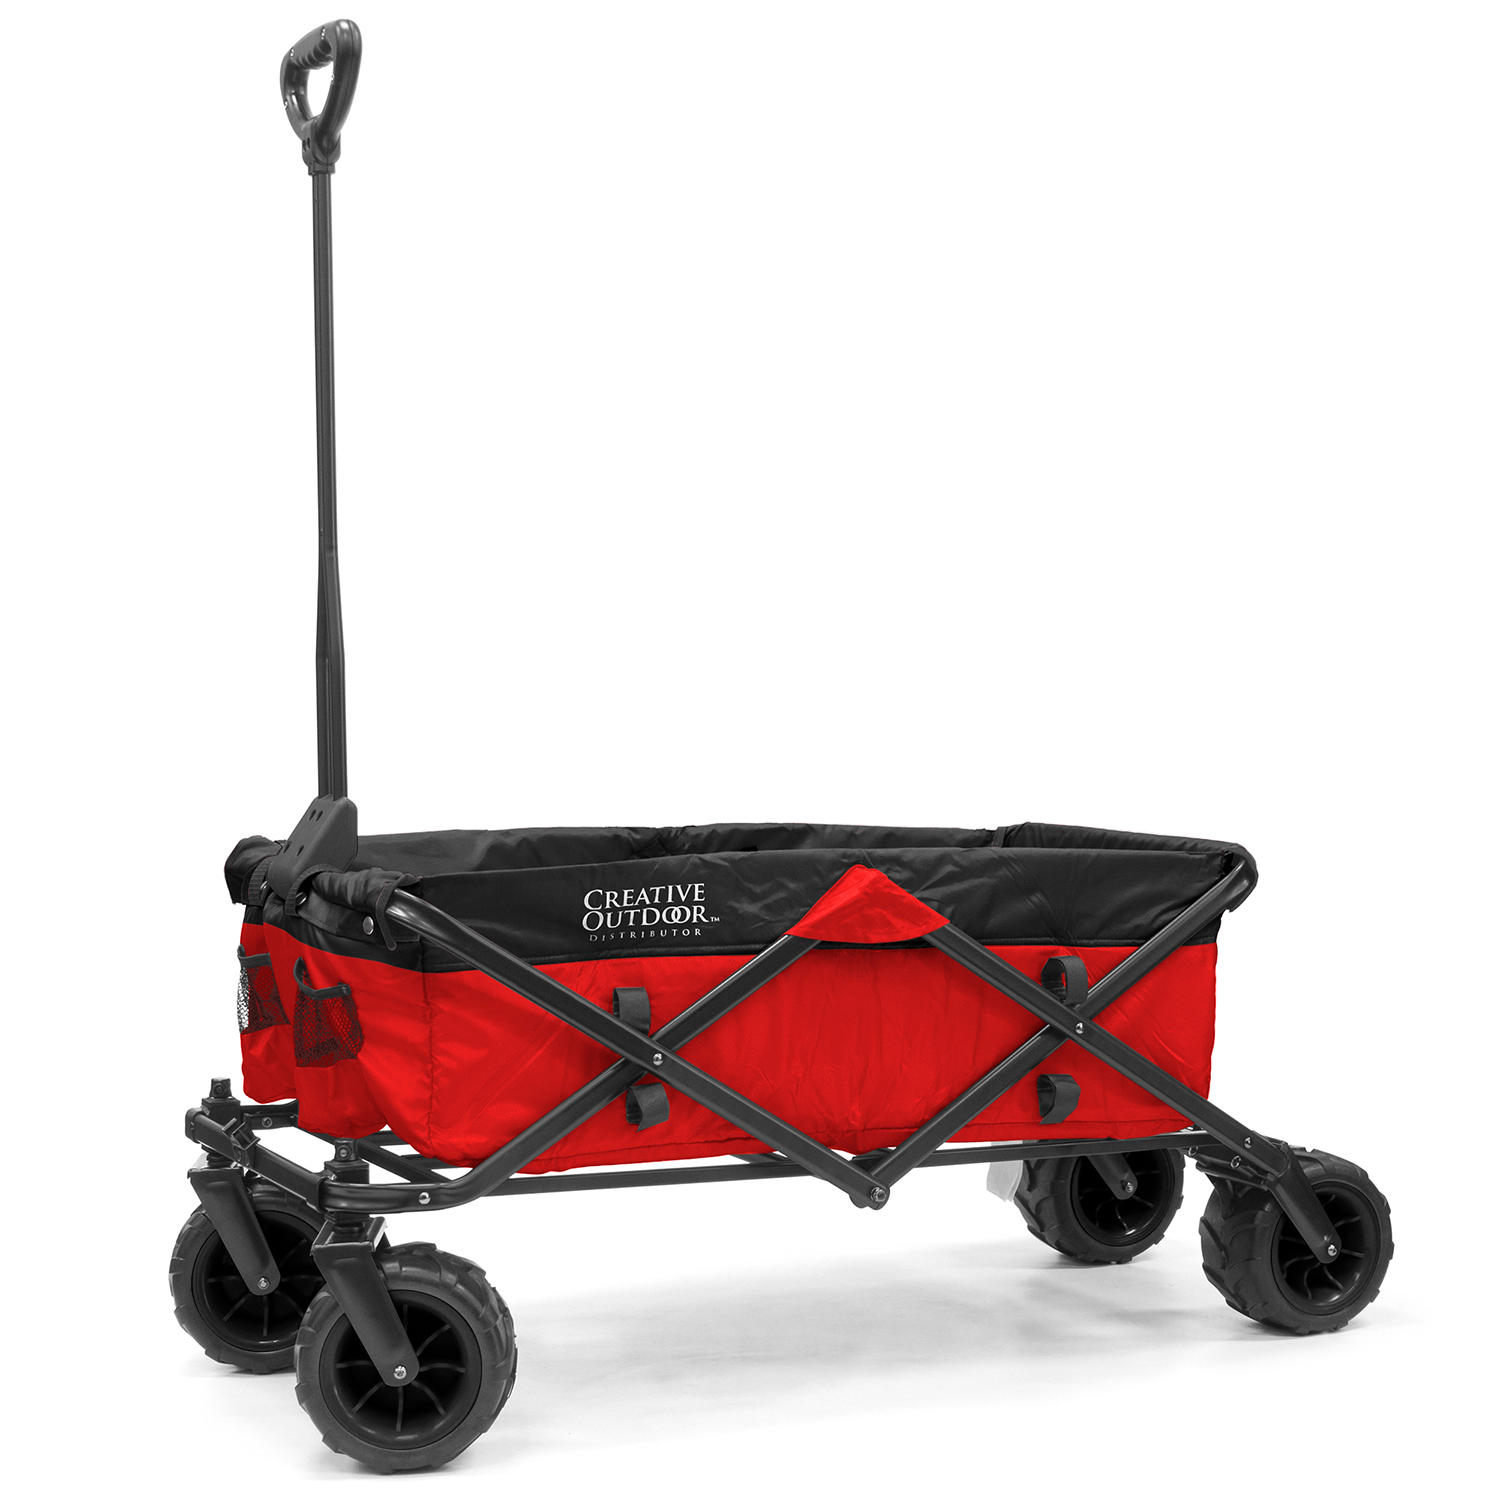 Creative Outdoor All-Terrain Folding Sport Compact Wagon Two-Tone (Variable Colors)